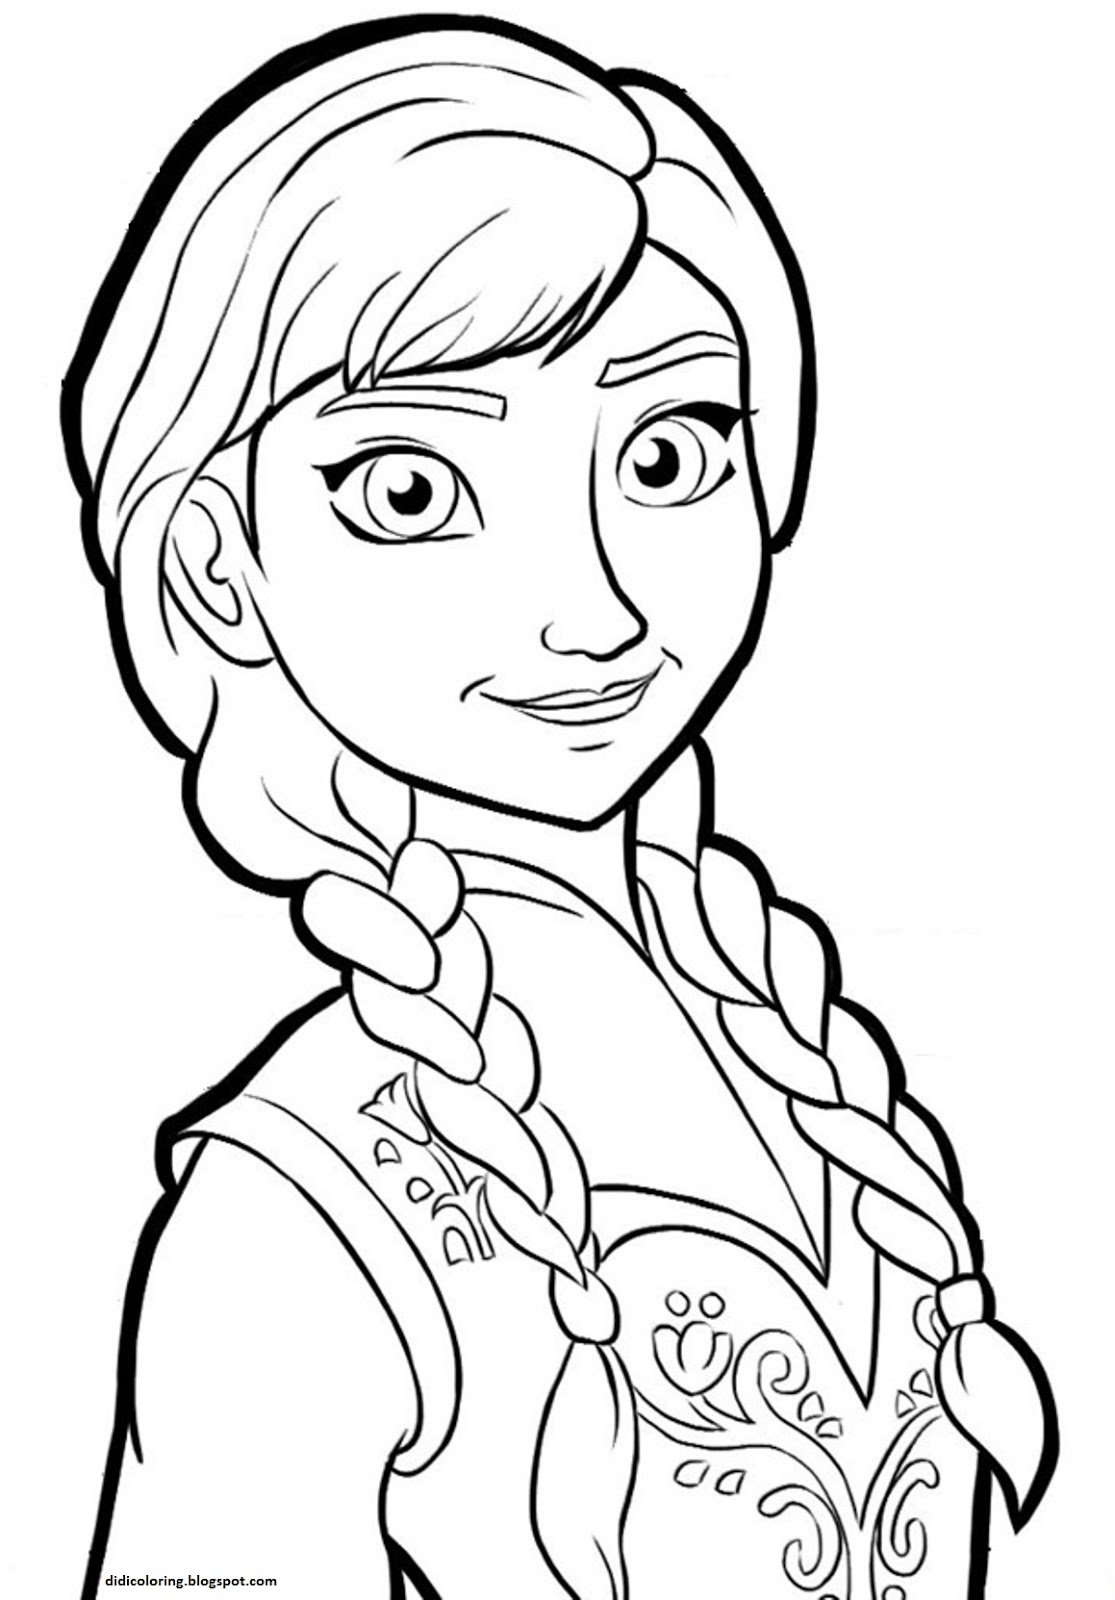 Free Printable Frozen Walt Disney Characters Coloring For Children